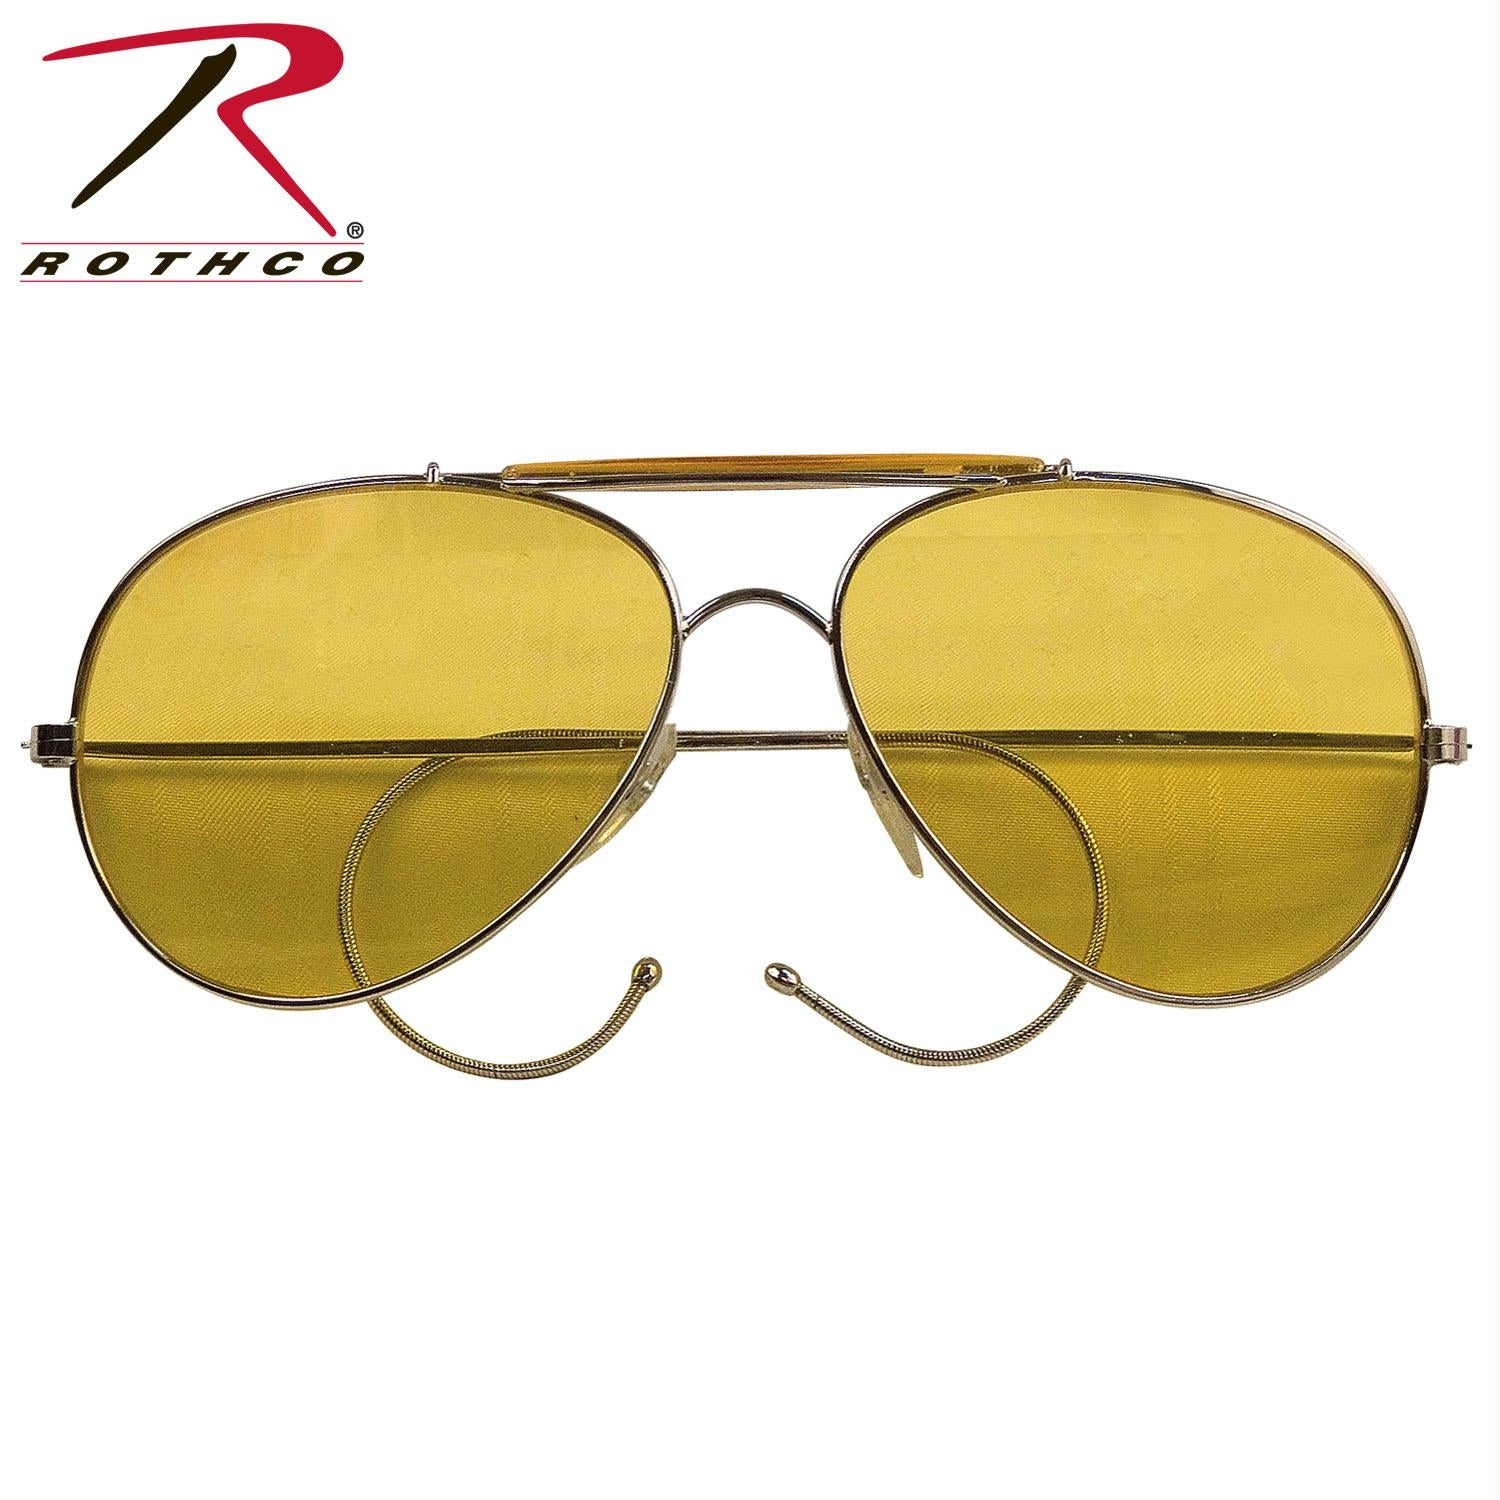 Rothco Aviator Air Force Style Sunglasses - Yellow / Military Printed Case & Box